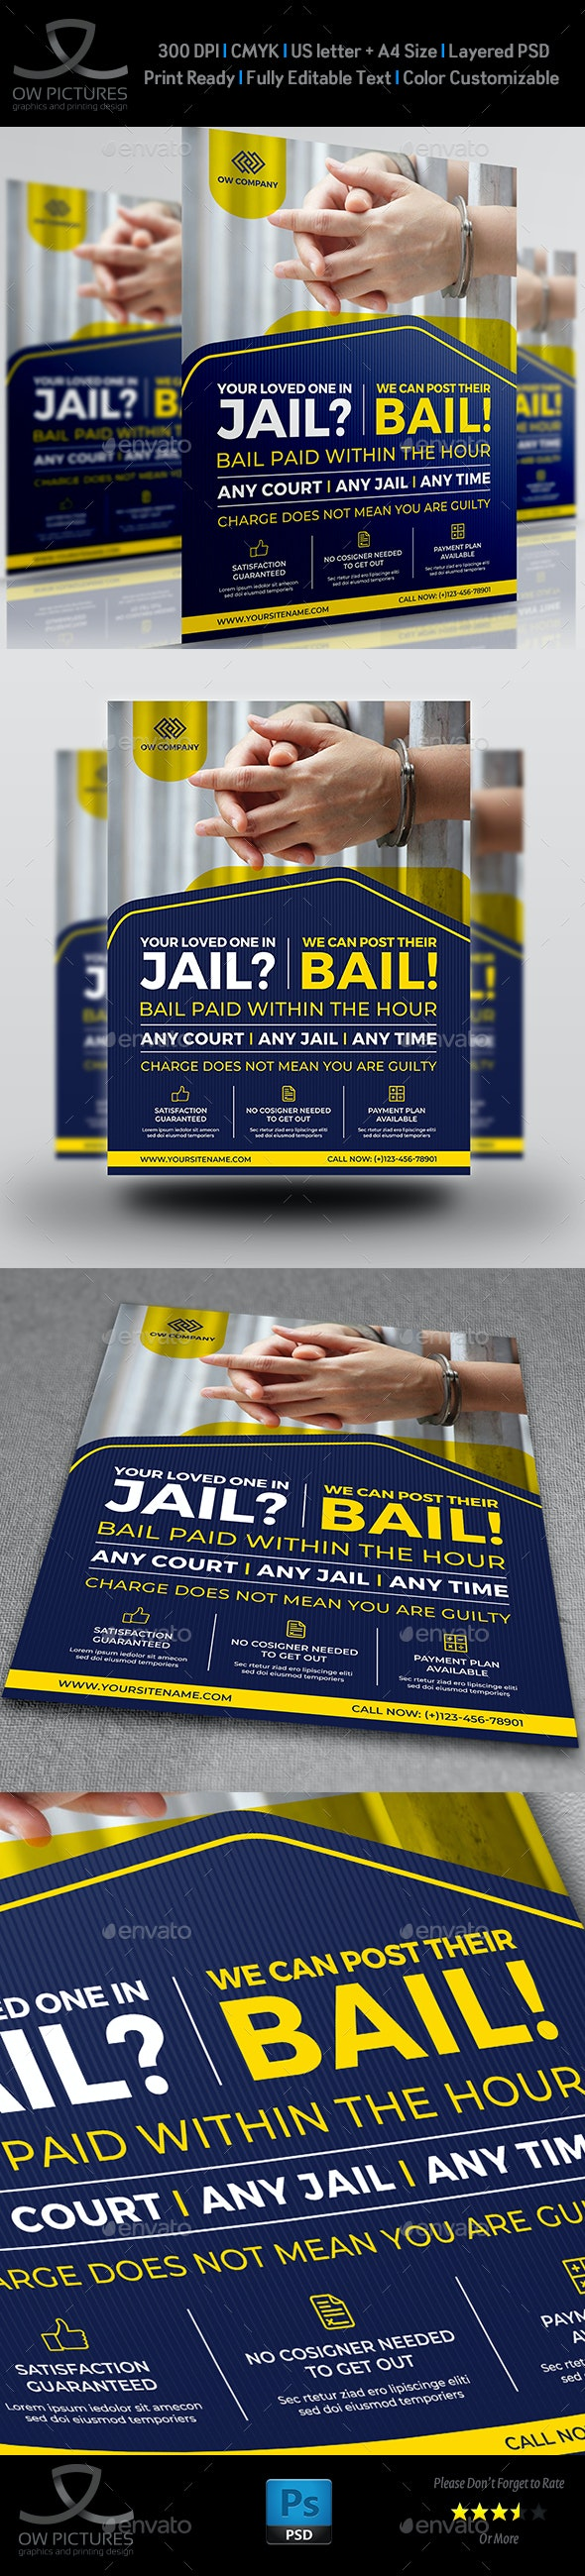 Jail and Bail Flyer Template - Flyers Print Templates